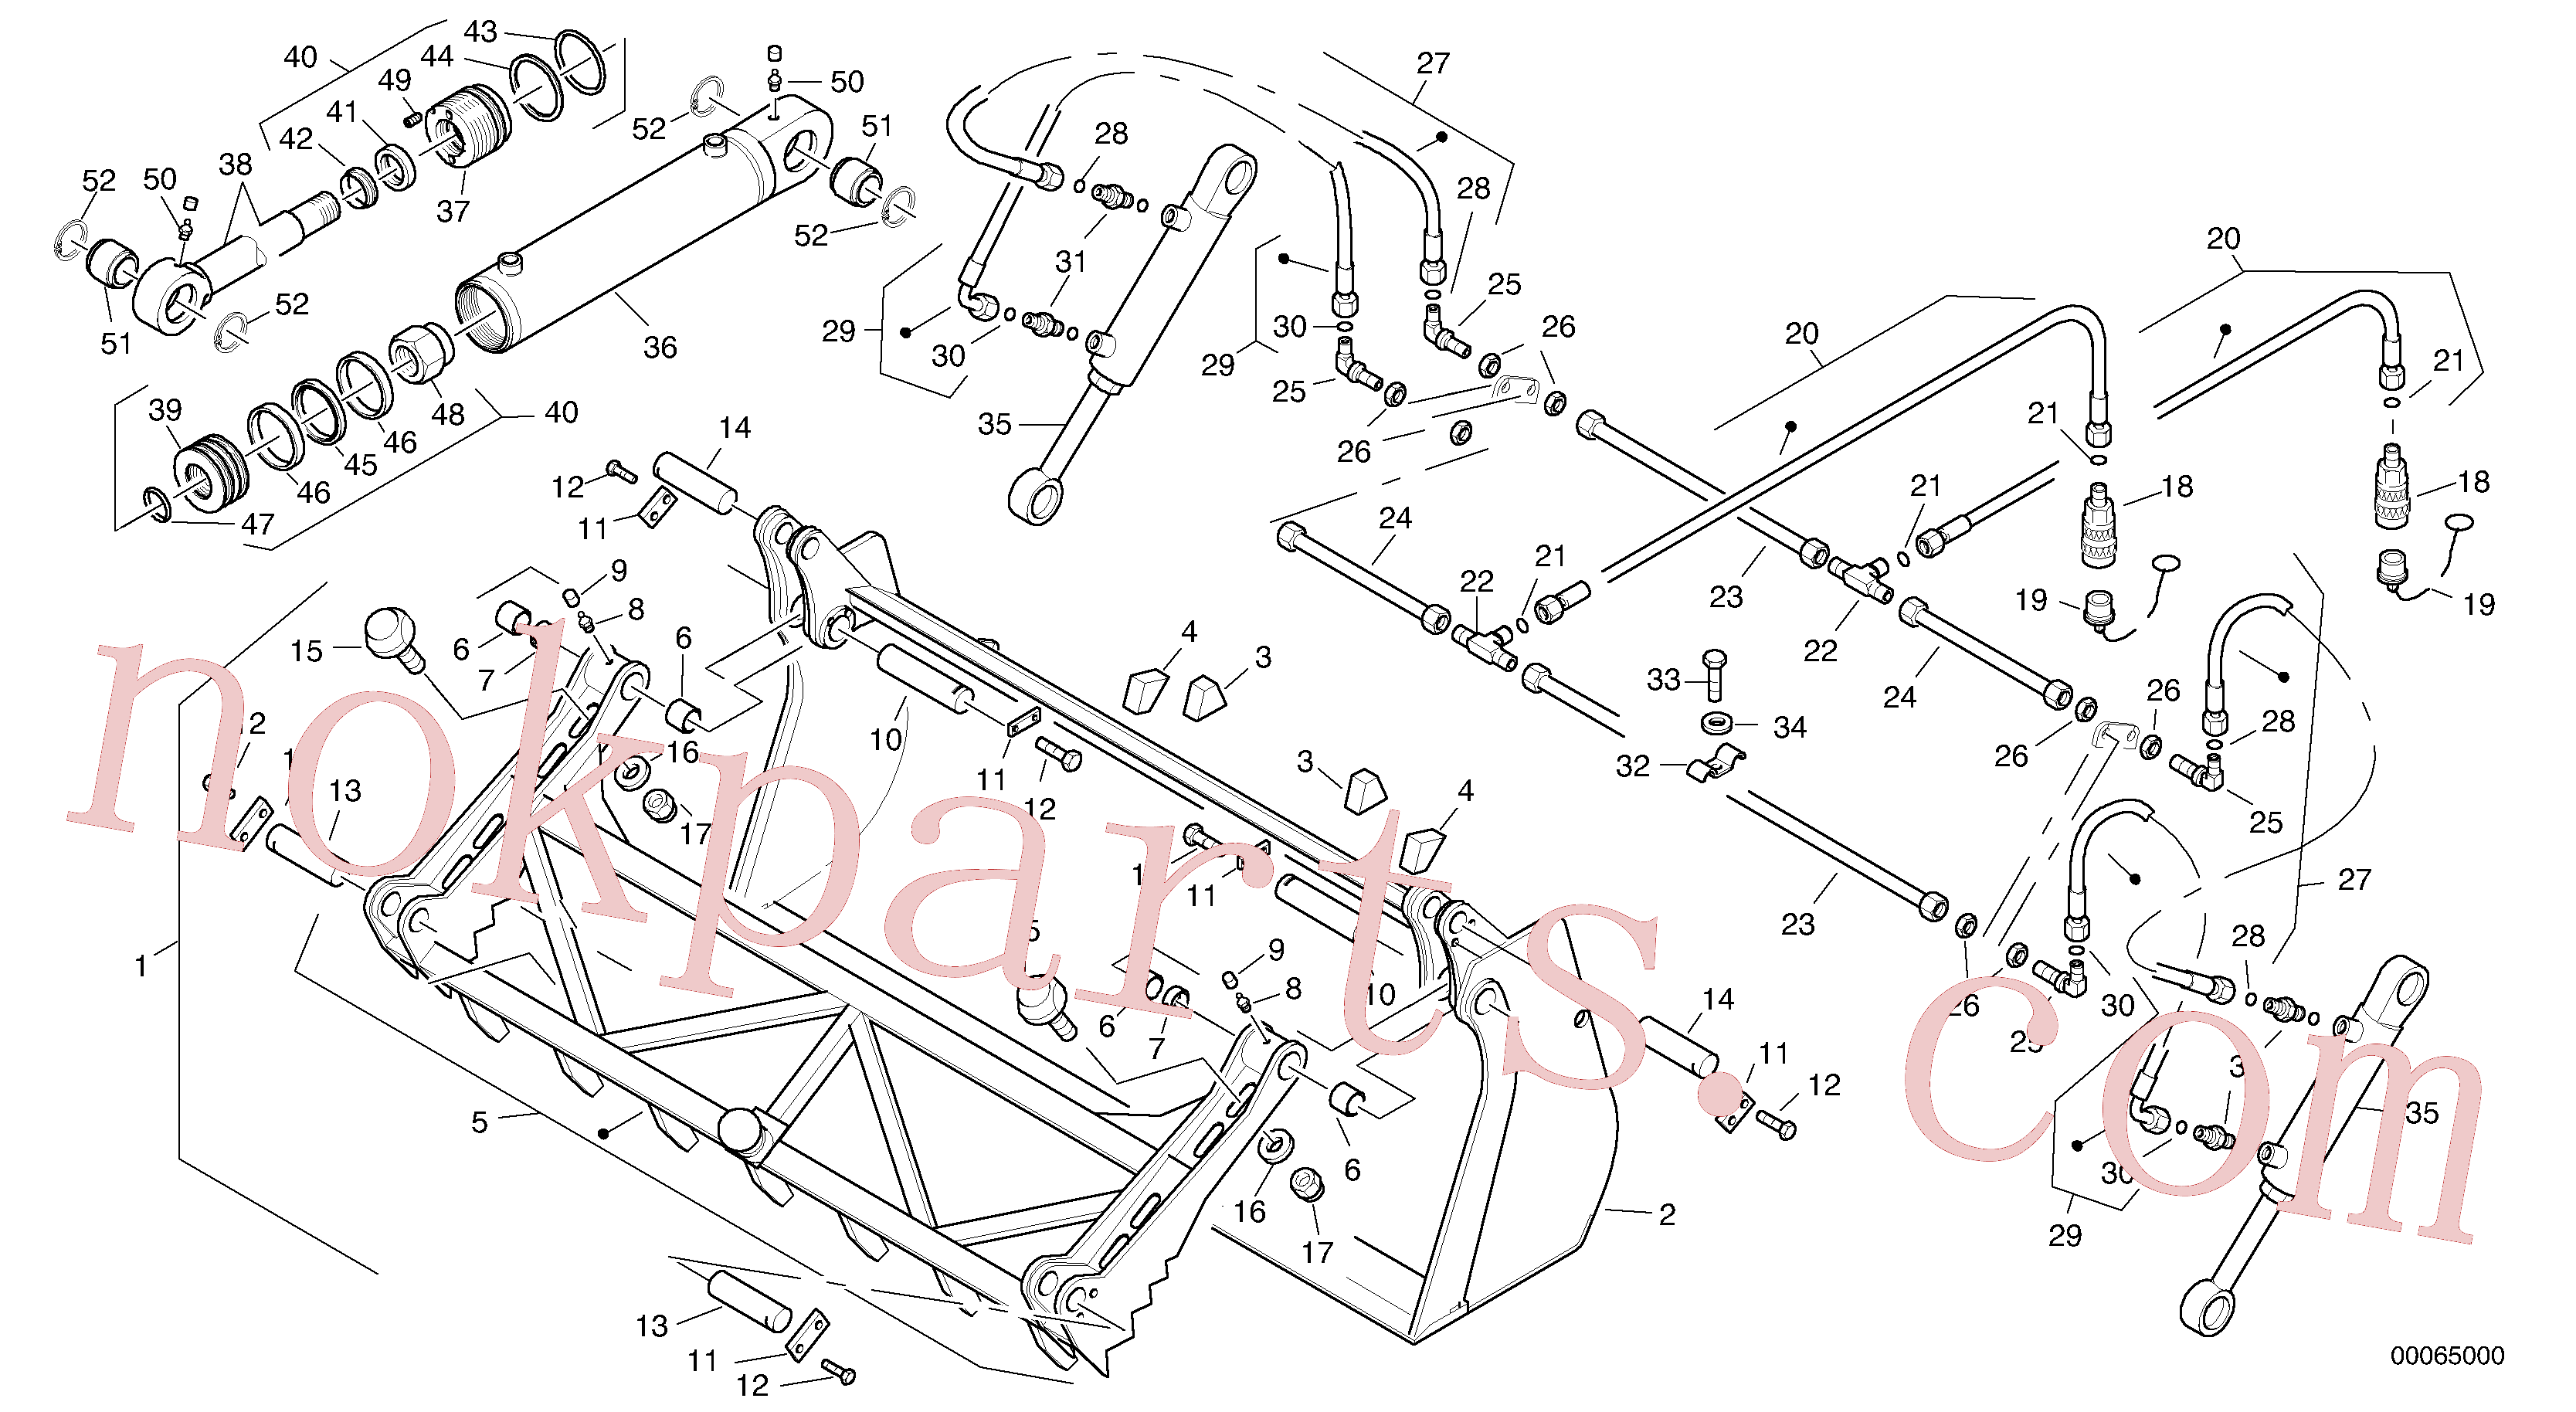 ZM2803785 for Volvo Grab bucket - TPZ(00065000 assembly)